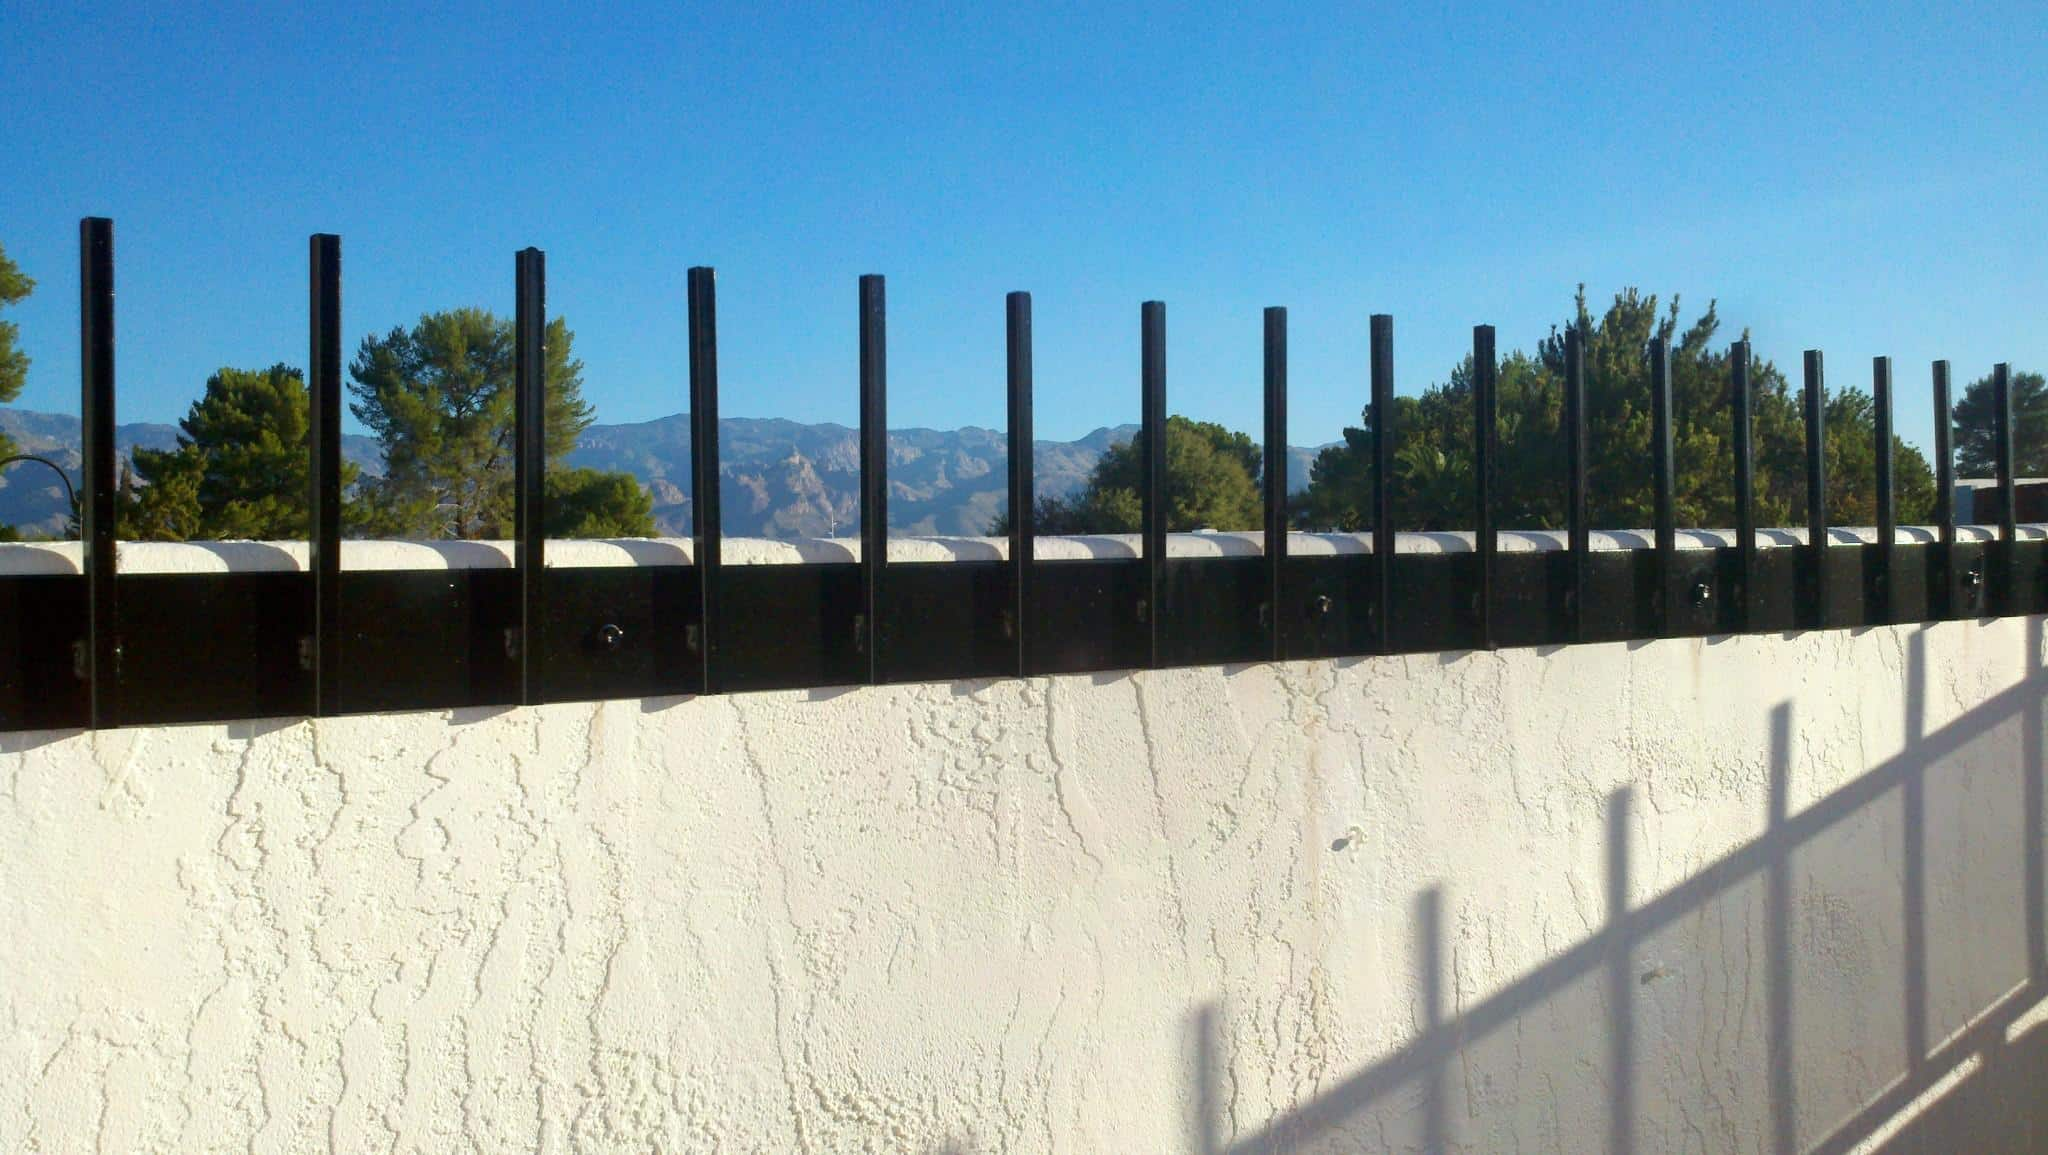 Decorative Security Fencing Security Fences Affordable Fence Gates